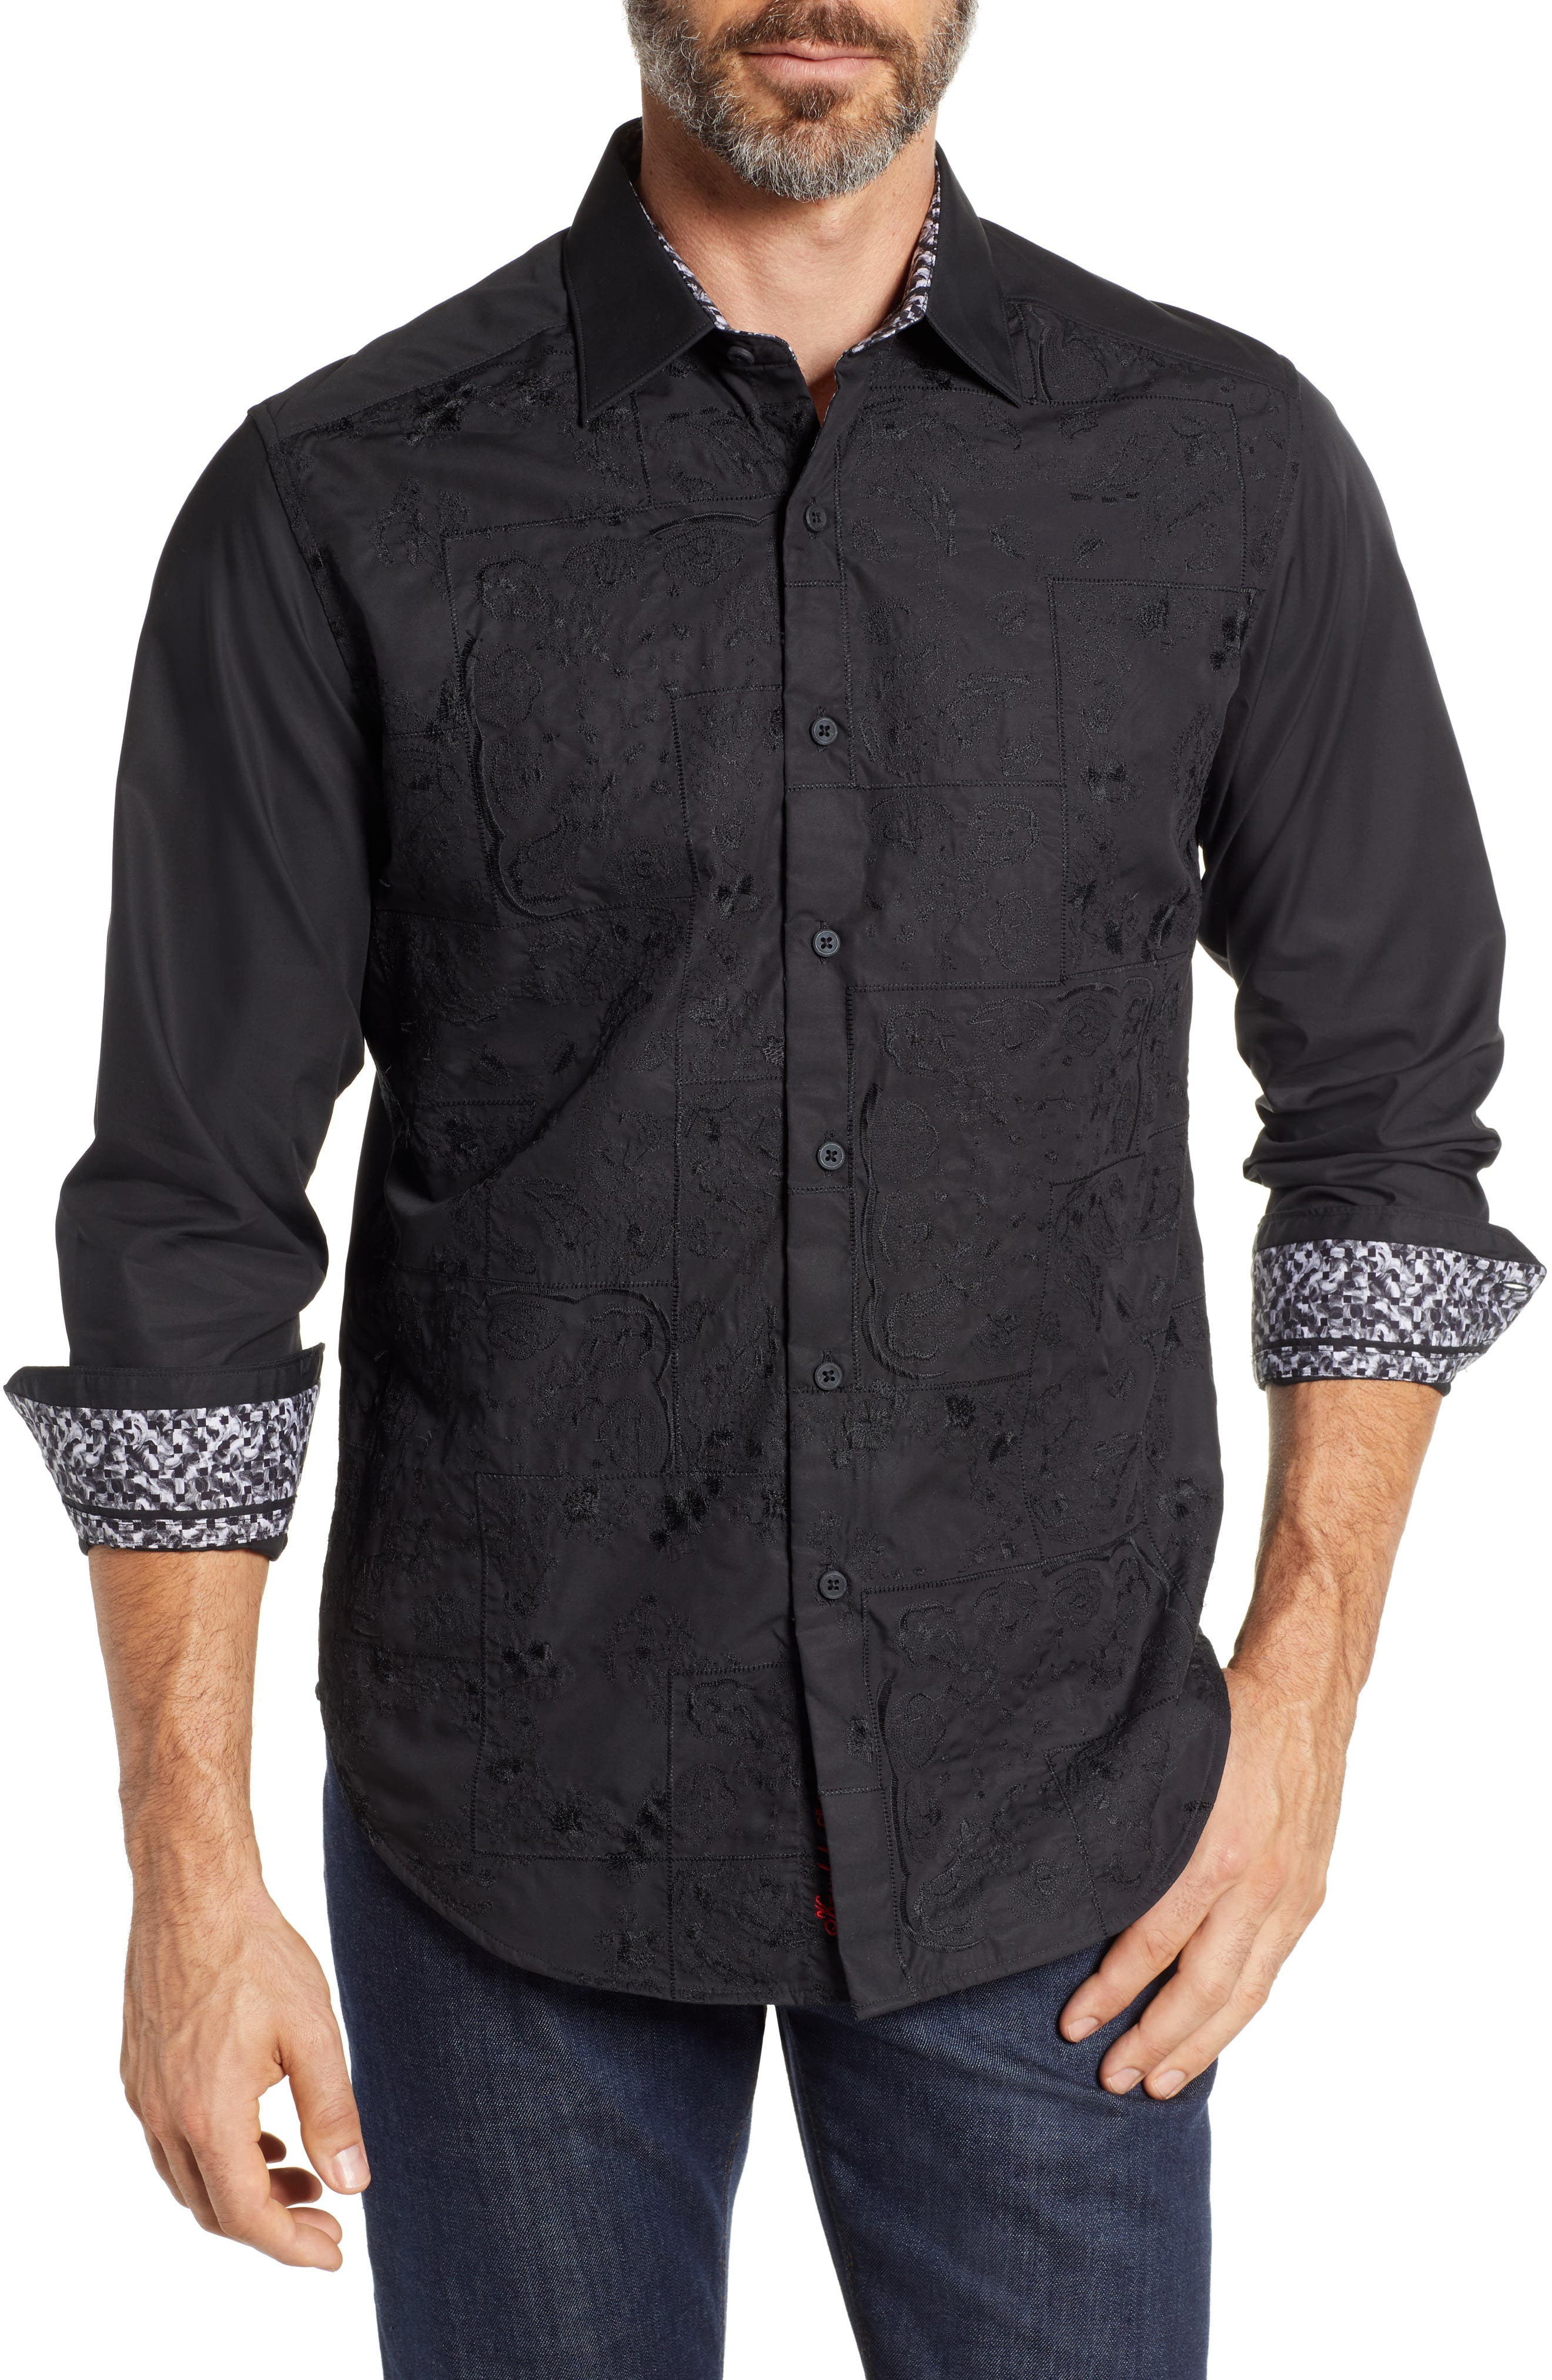 Onyx Classic Fit Embroidered Sport Shirt,                             Main thumbnail 1, color,                             001